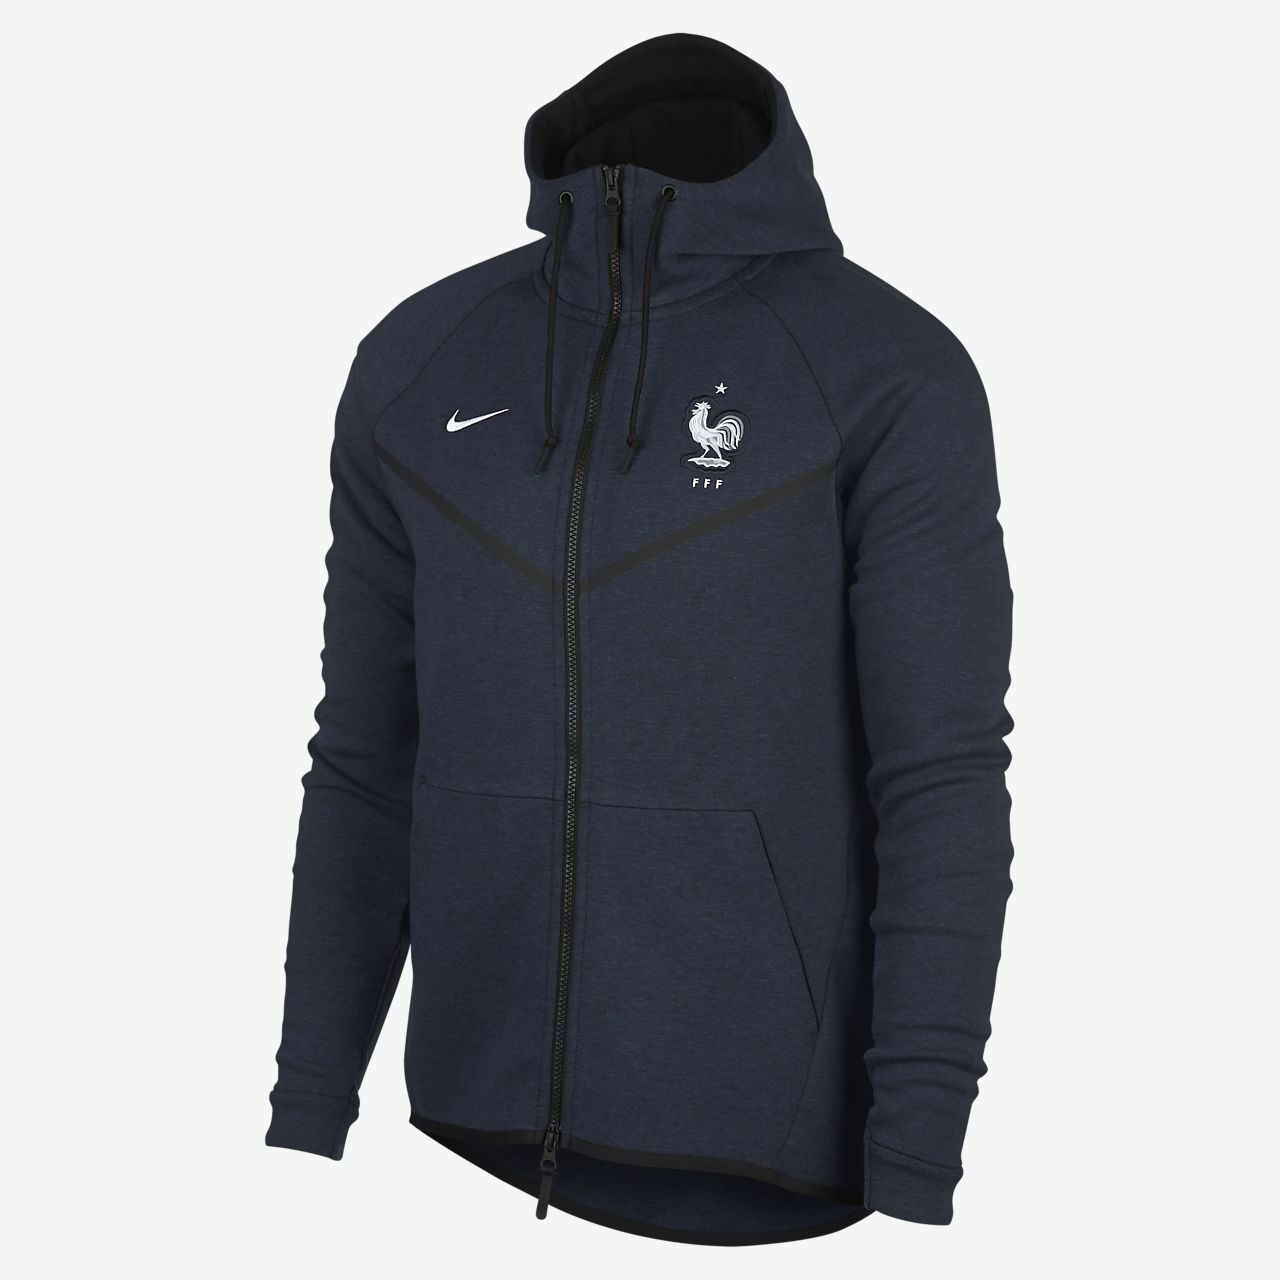 40e781535e FFF Tech Fleece Windrunner Men s Jacket. Nike.com NL